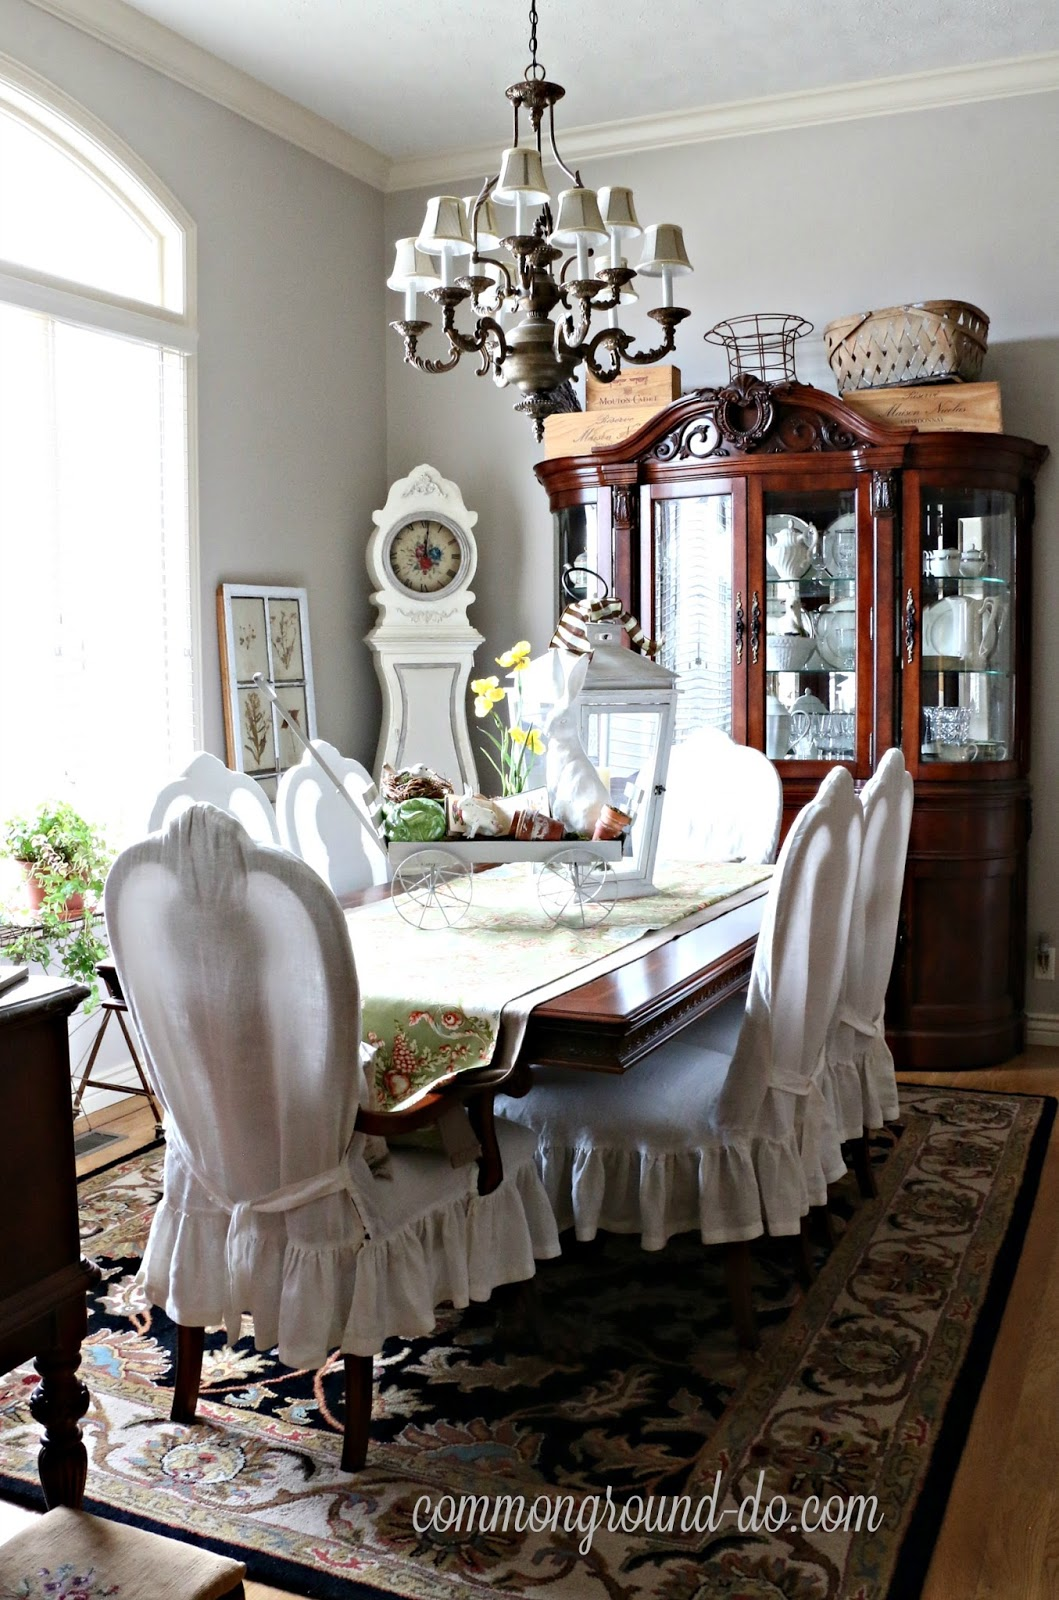 Our Spring Dining Room: Common Ground : Spring Dining Room With Hello, Spring Blog